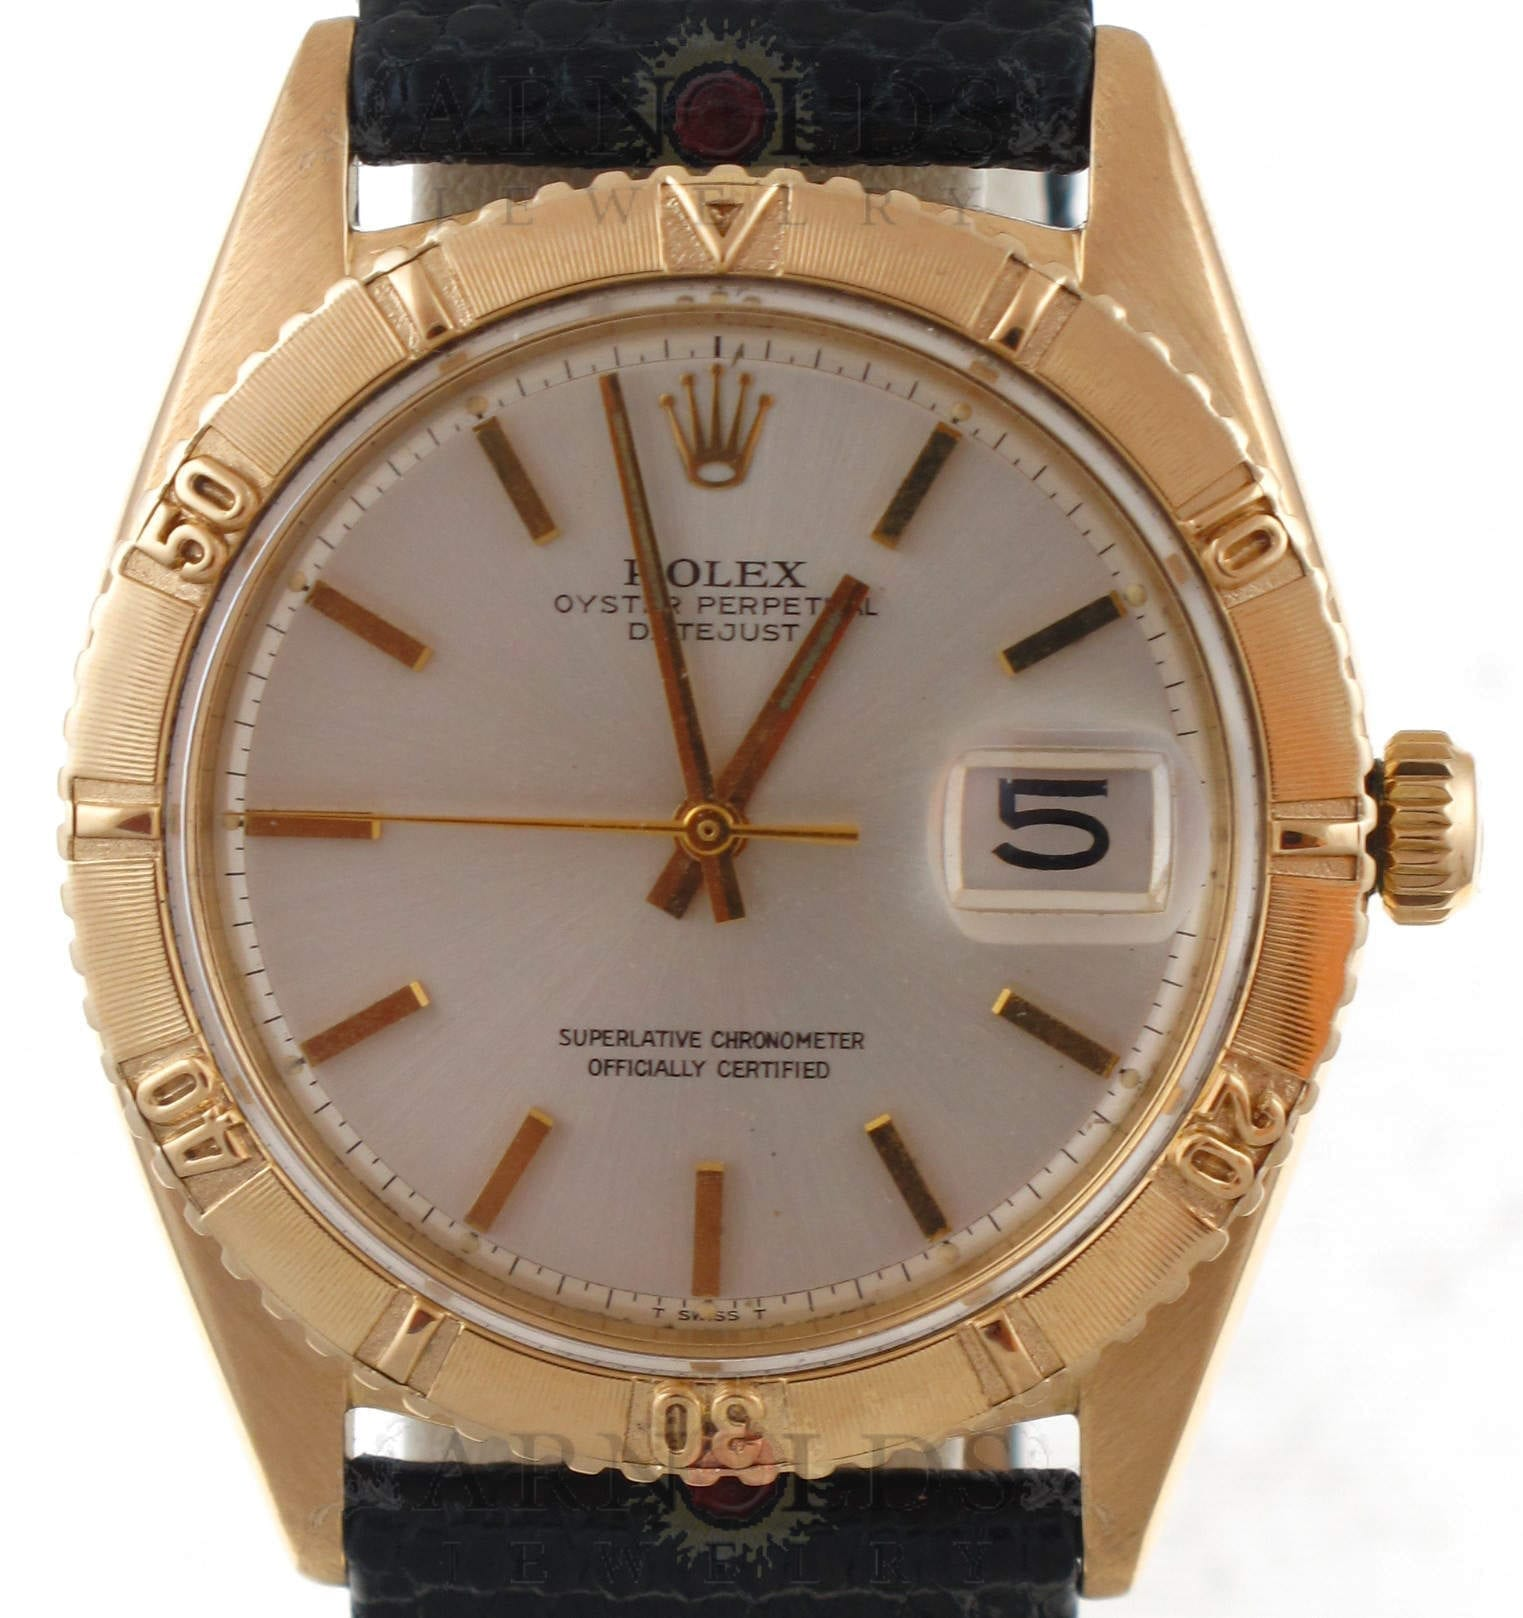 Pre Owned 1962 Vintage 18kt Yellow Gold Rolex Datejust Thunderbird Watch With Silver Stick Dial Black Leather Band Model 1625